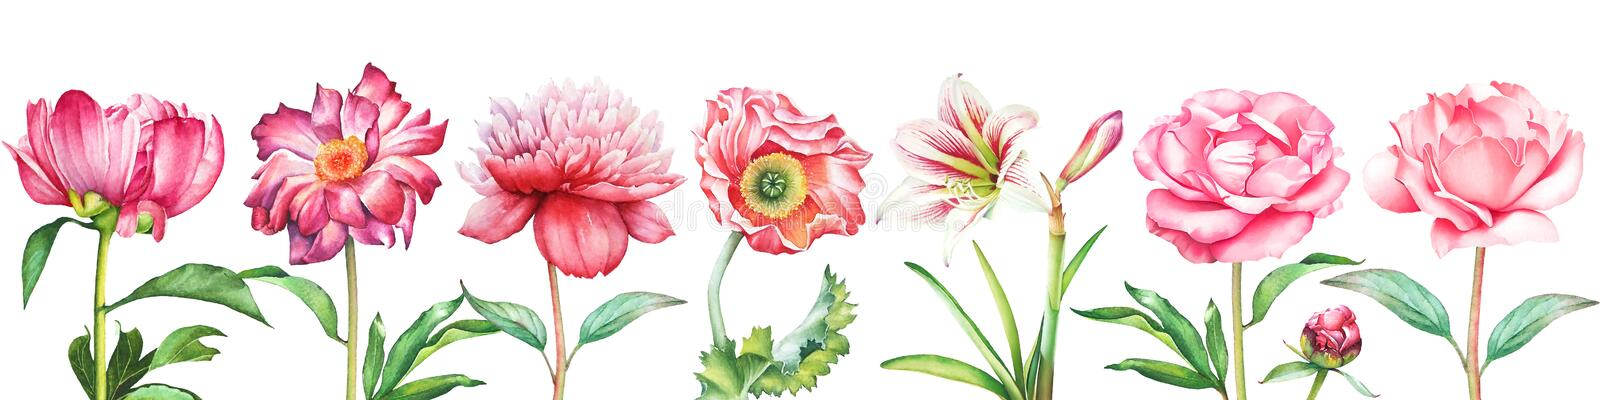 Background with watercolor red and pink peony, rose, poppy and amaryllis flowers stock illustration